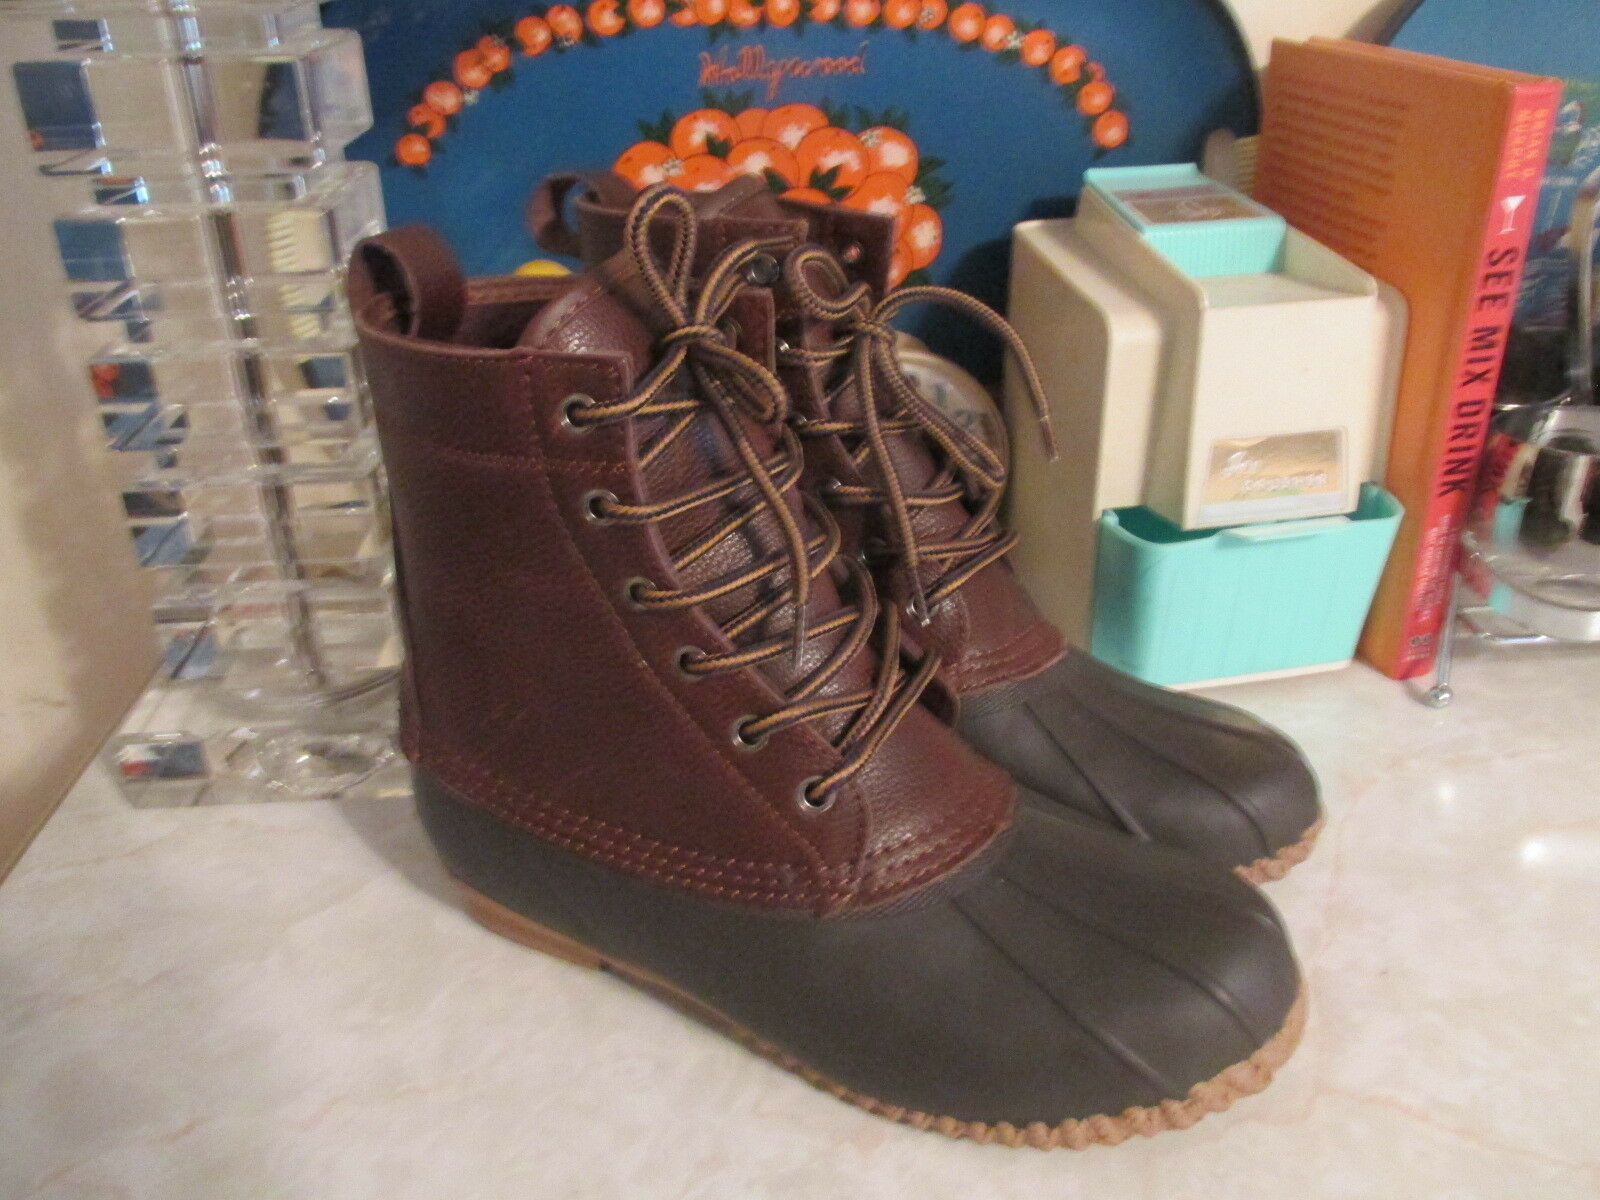 American Eagle Outfitters Duck Boots Rain Boots Men's Size 7 Pebbled leather